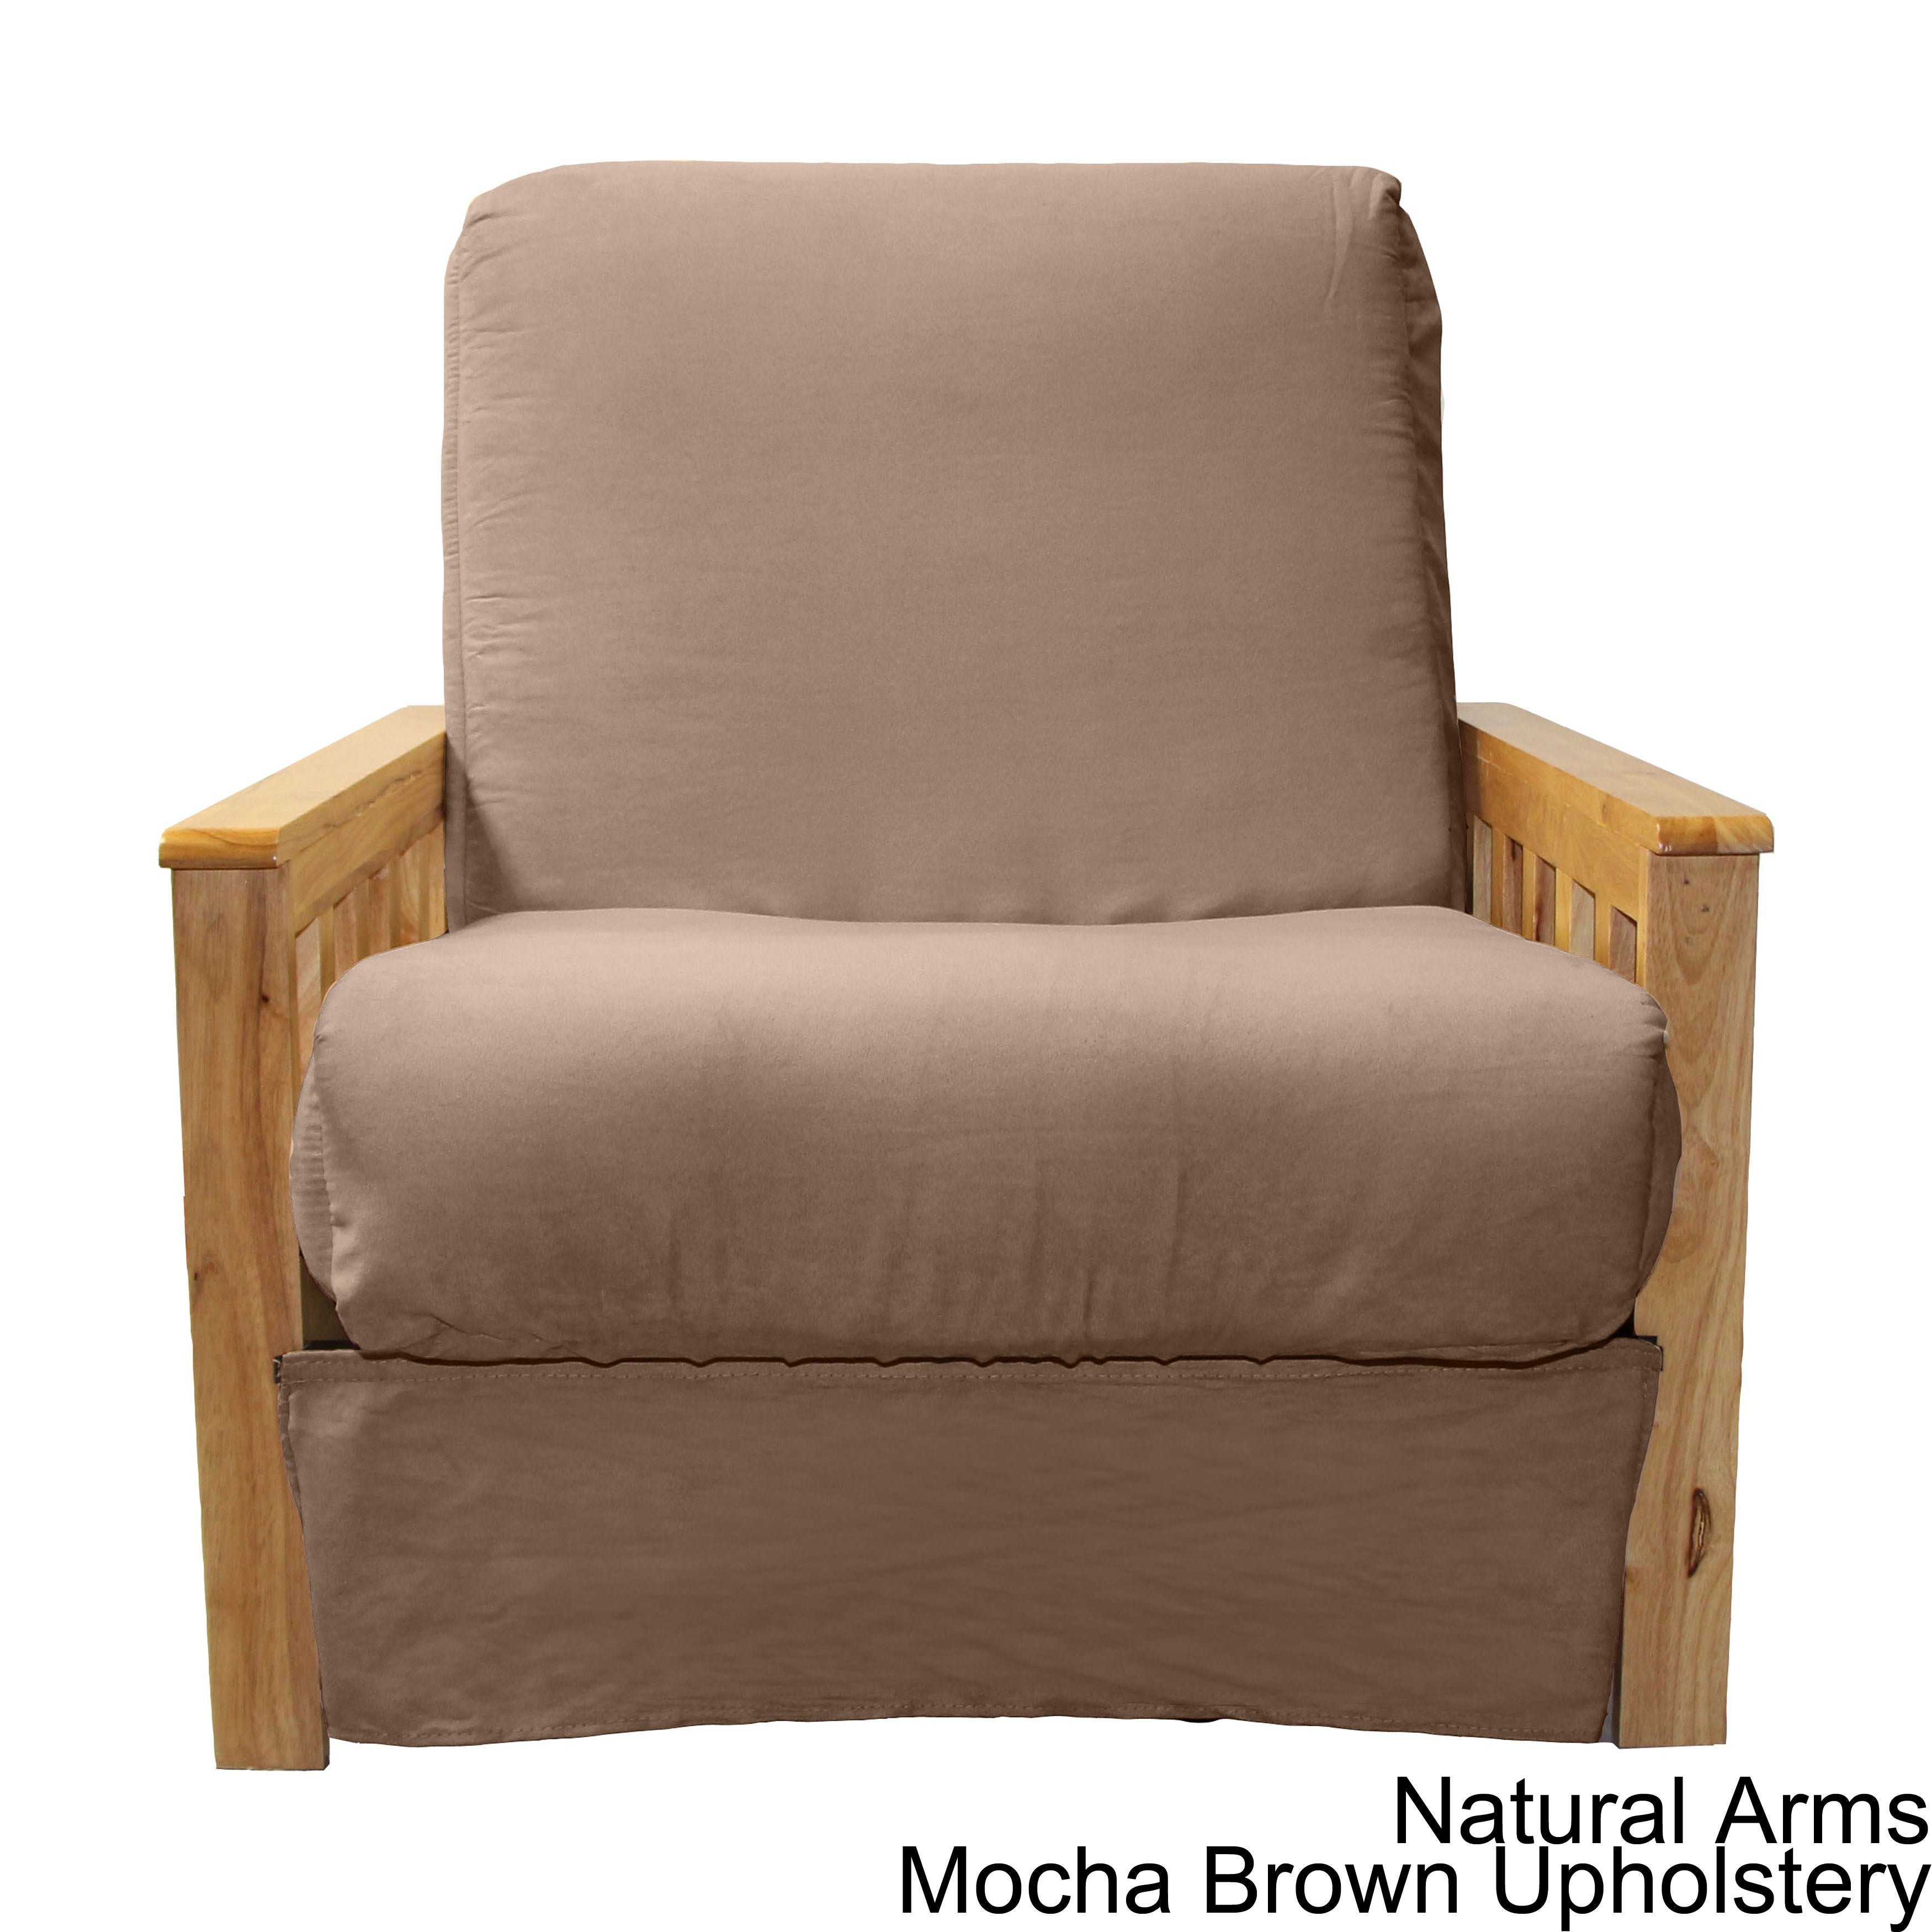 Provo Perfect Sit and Sleep Mission style Pillow Top Futon Chair